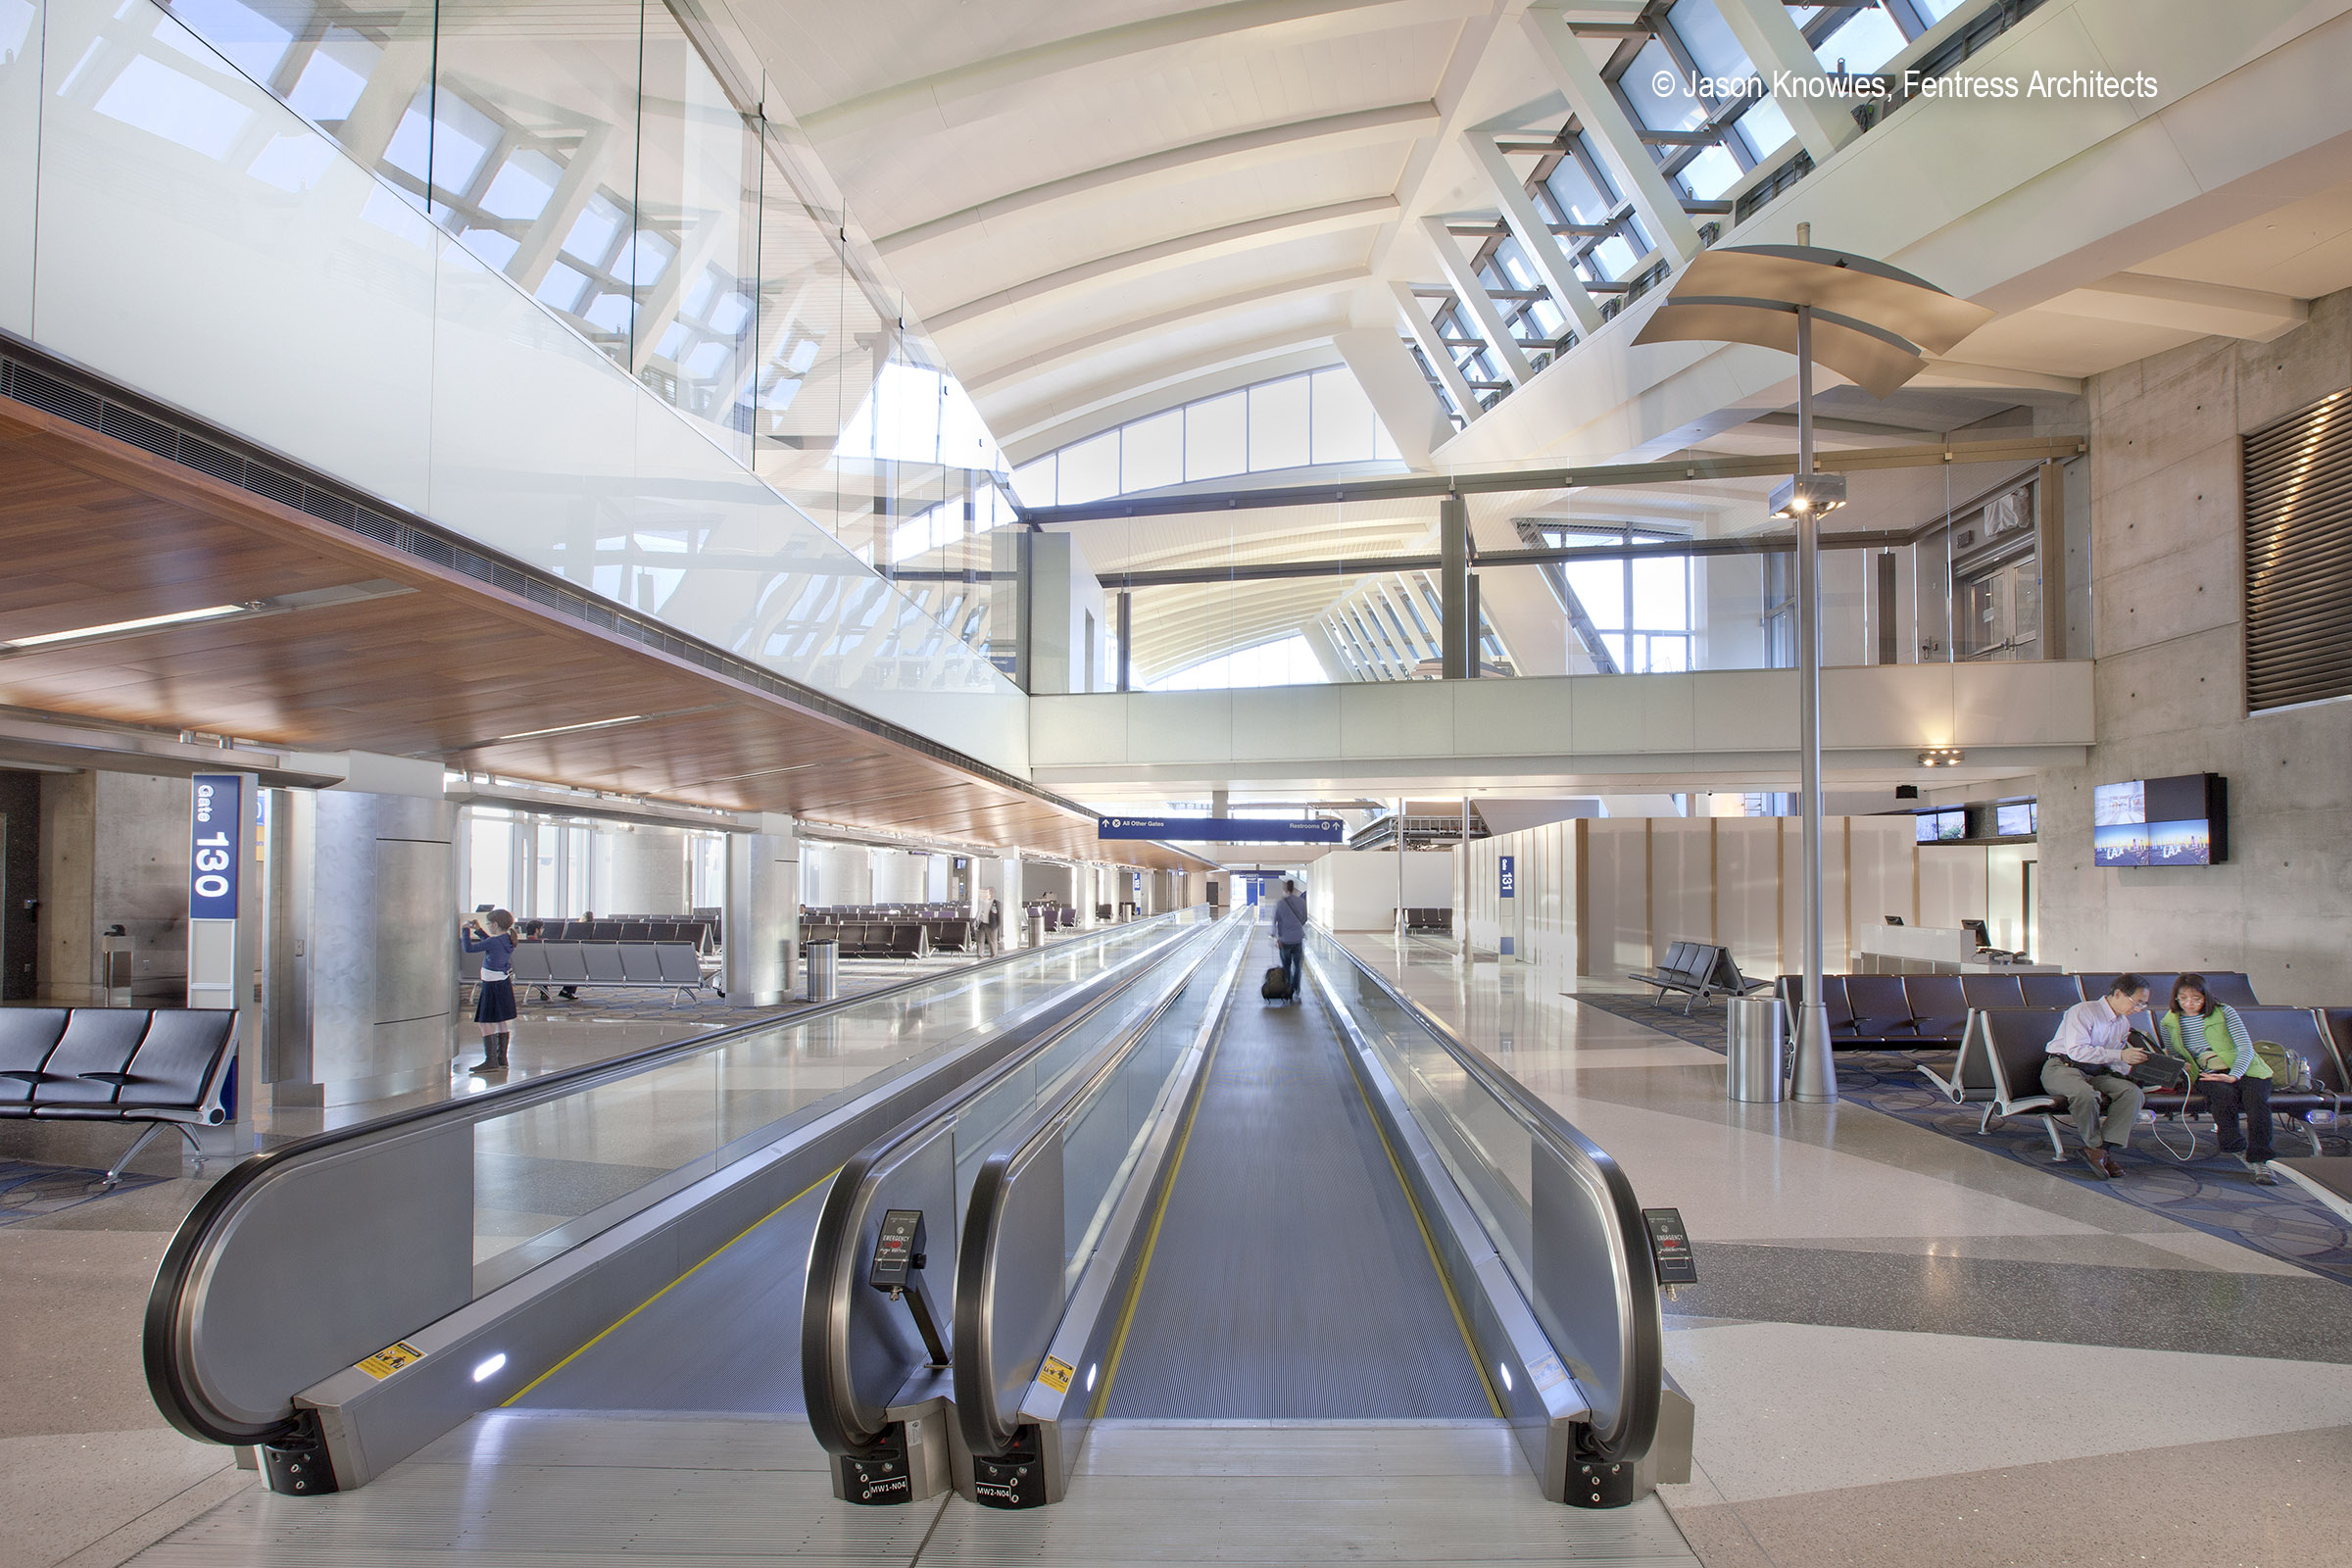 Tom Bradley International Terminal Expansion at LAX